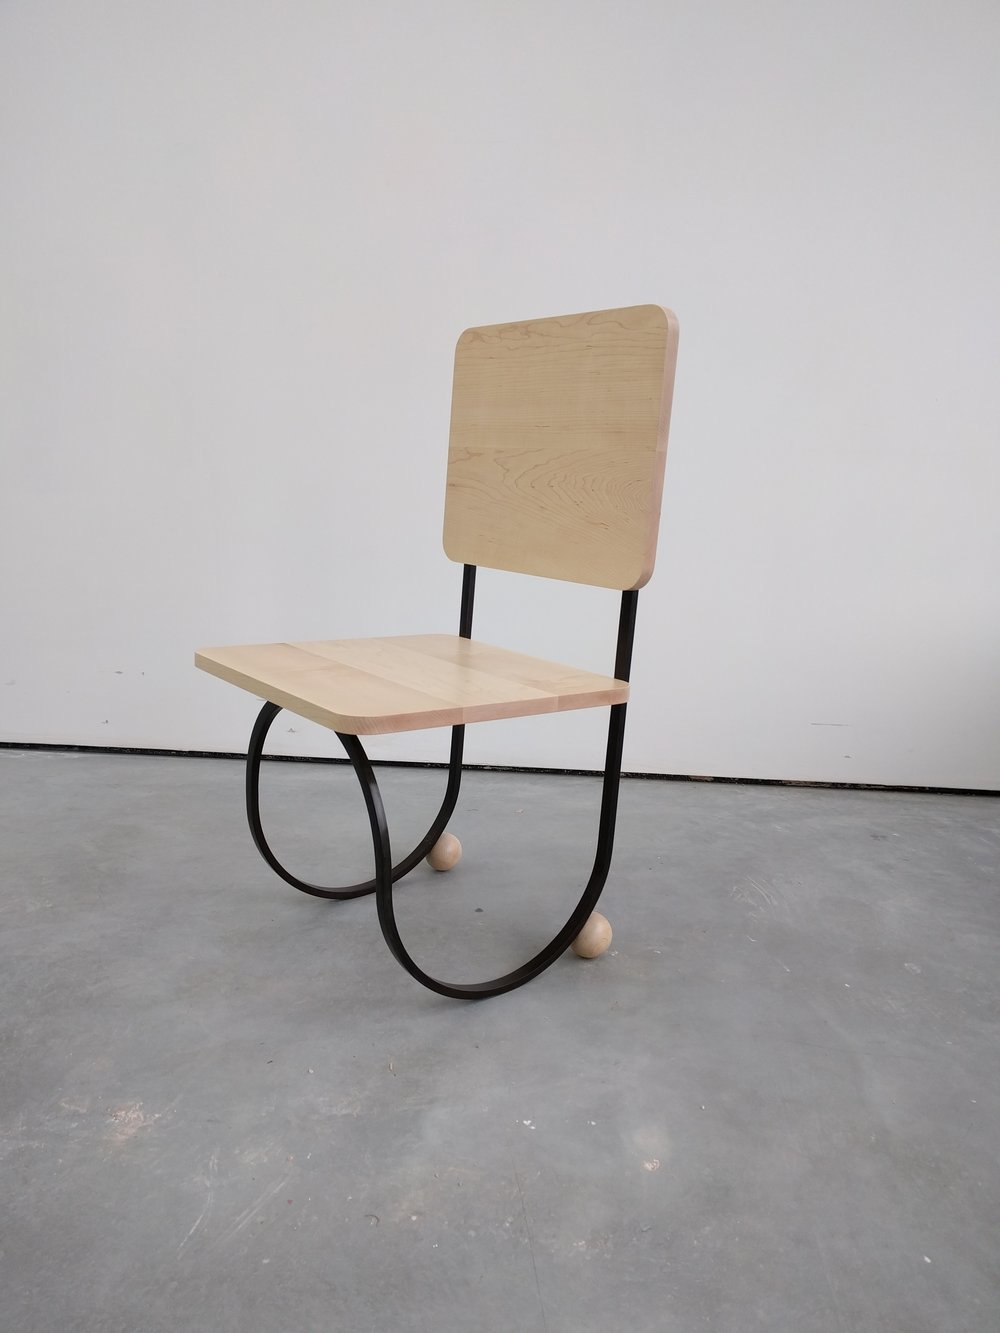 Charles Avery,  Untitled (Chair #2) , 2016, Patinated bronze, maple wood, 87.5 x 45 x 44 cm, AP from edition of 6 + 1 AP, Courtesy the artist, Grimm Gallery, Amsterdam and Pilar Corrias, London